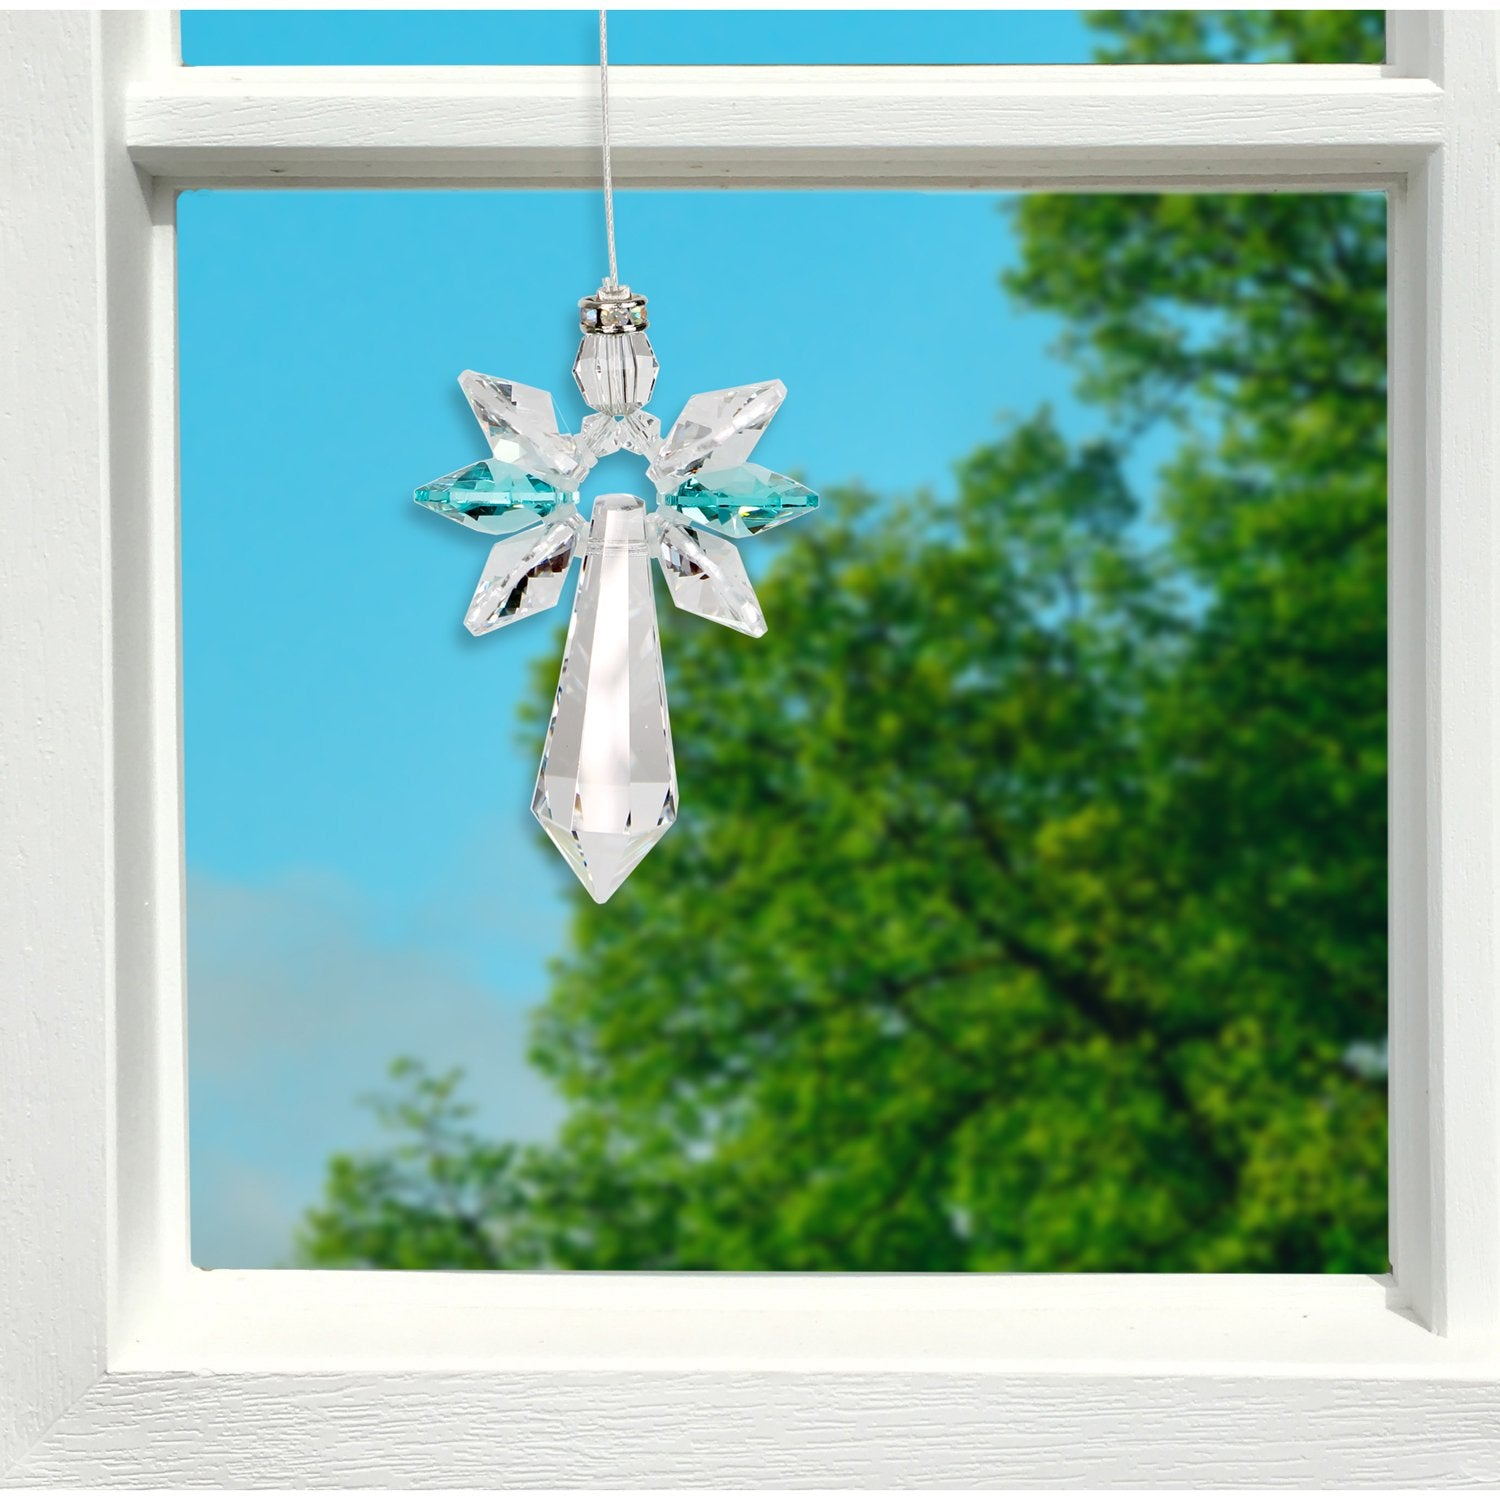 Crystal Guardian Angel Suncatcher - Large, Blue Zircon lifestyle image